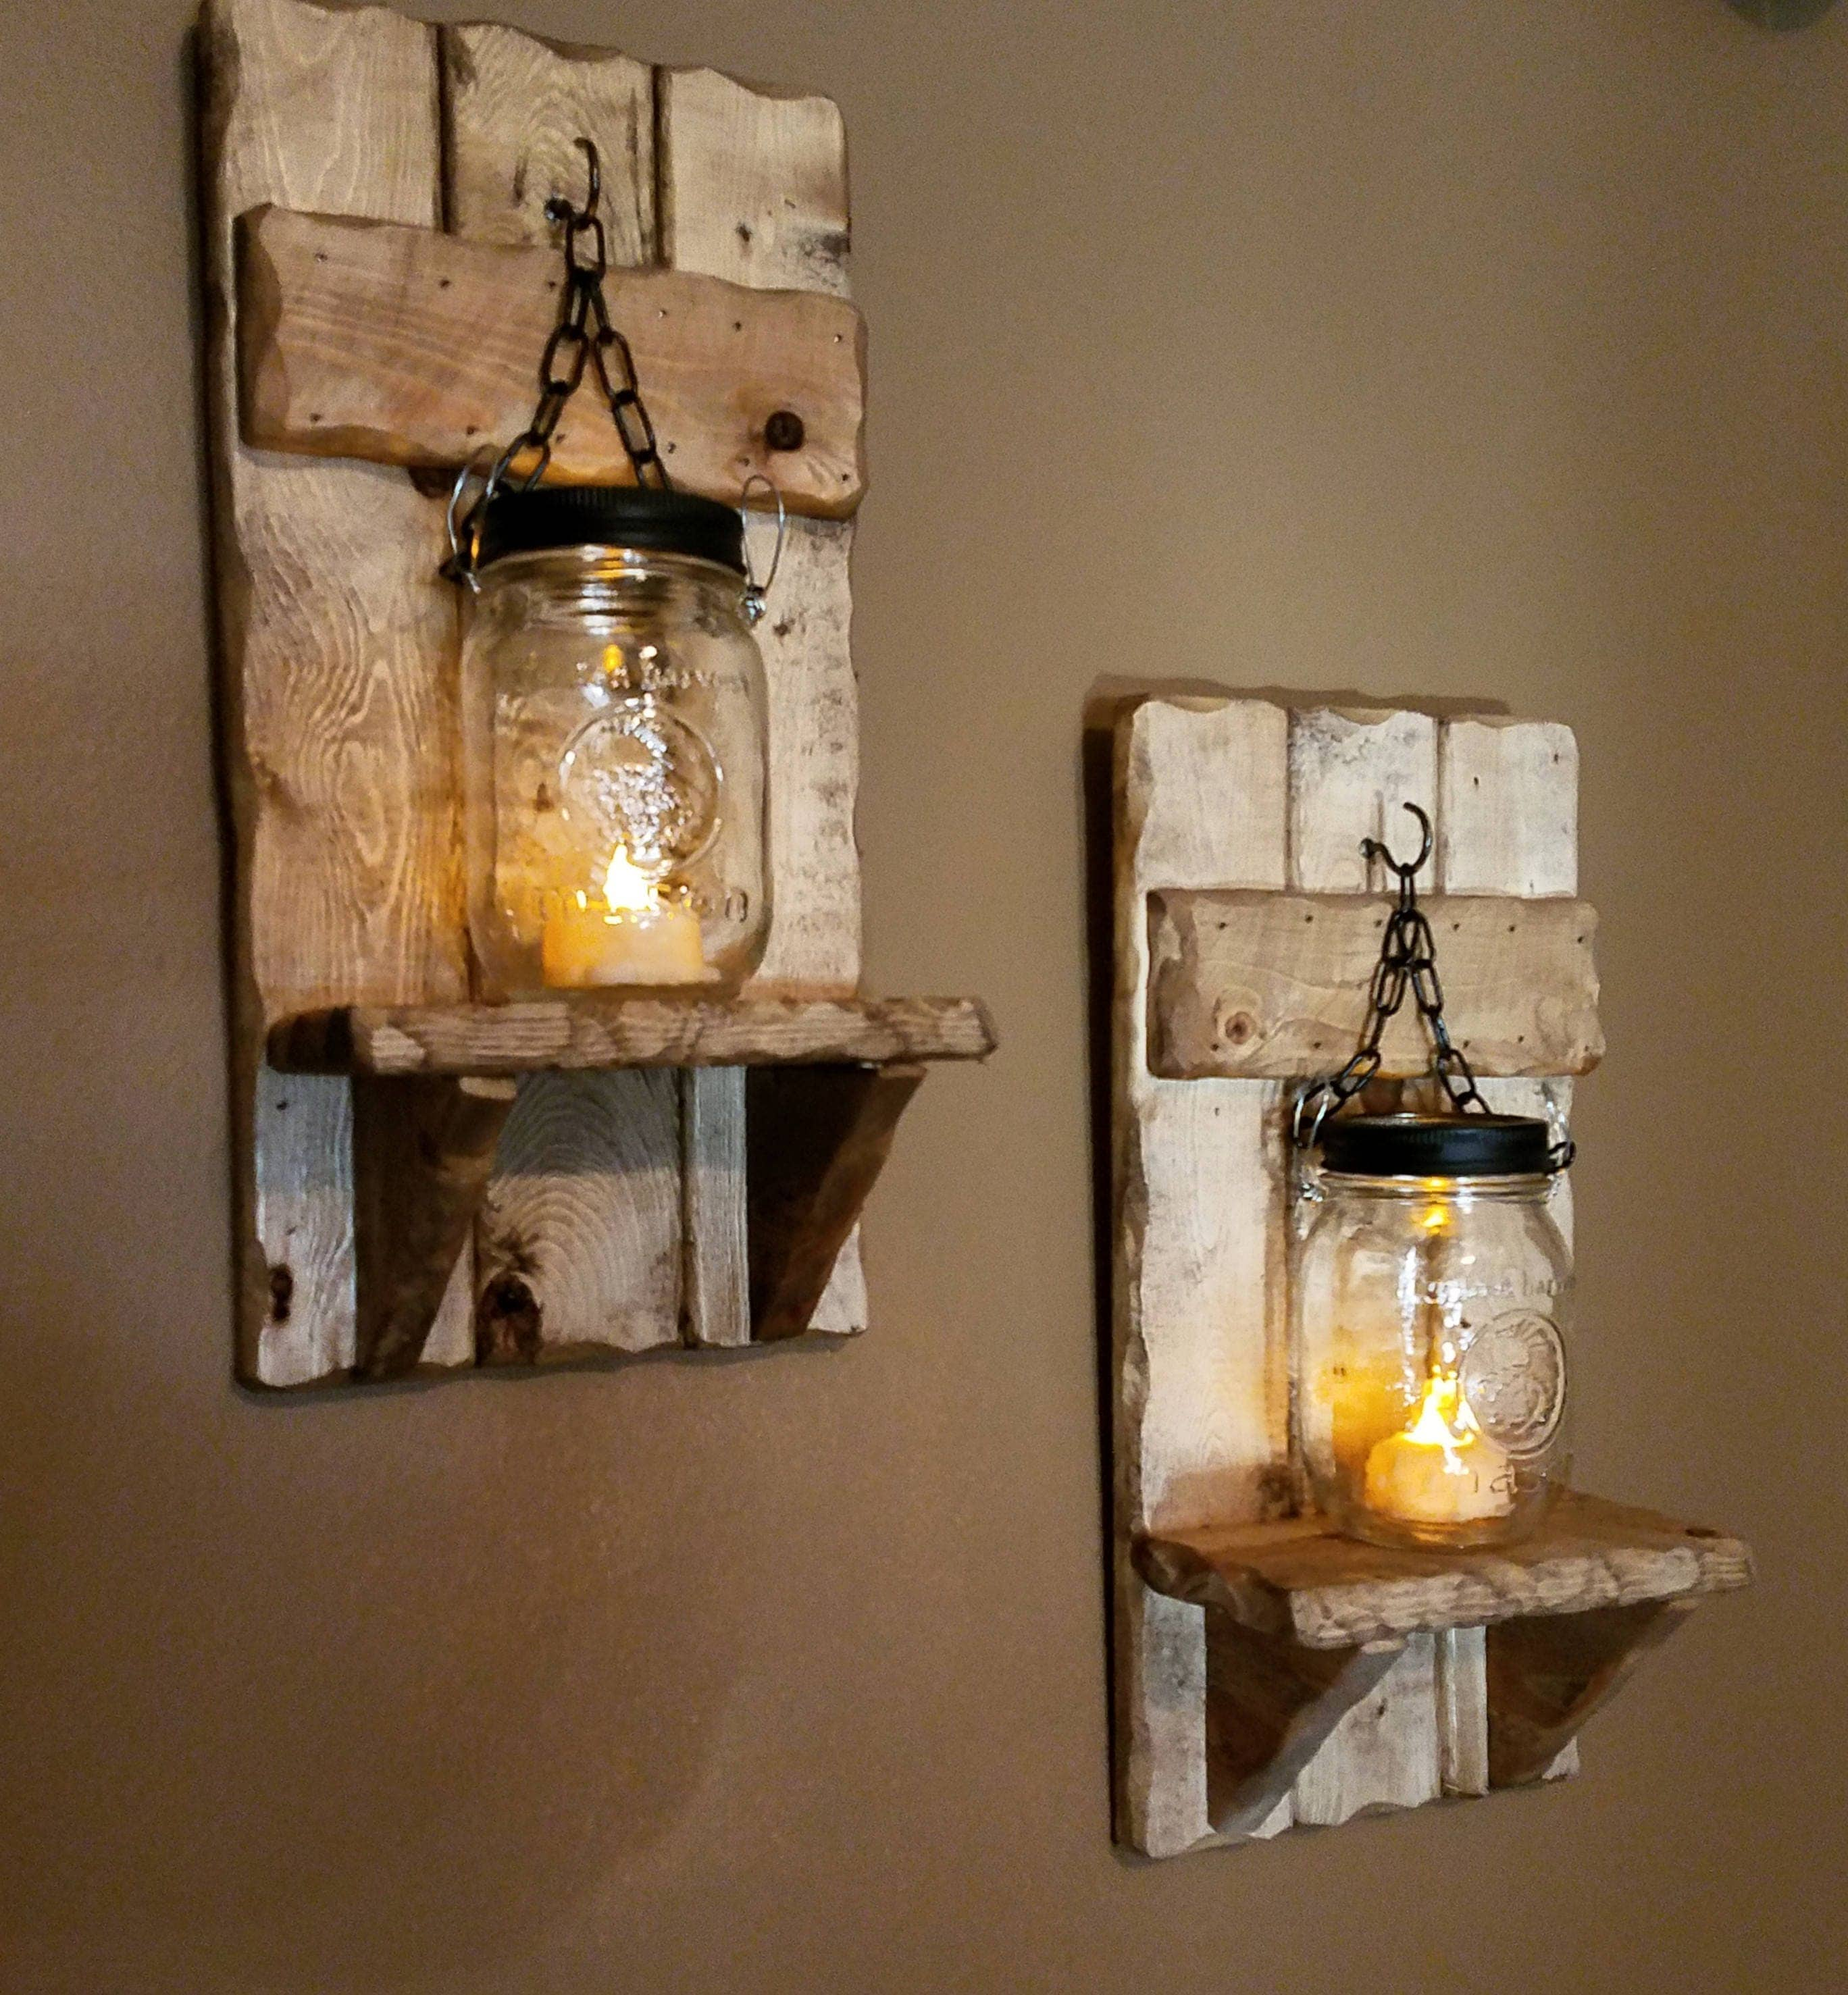 Mason jar candle holder rustic country decor sconces zoom amipublicfo Image collections